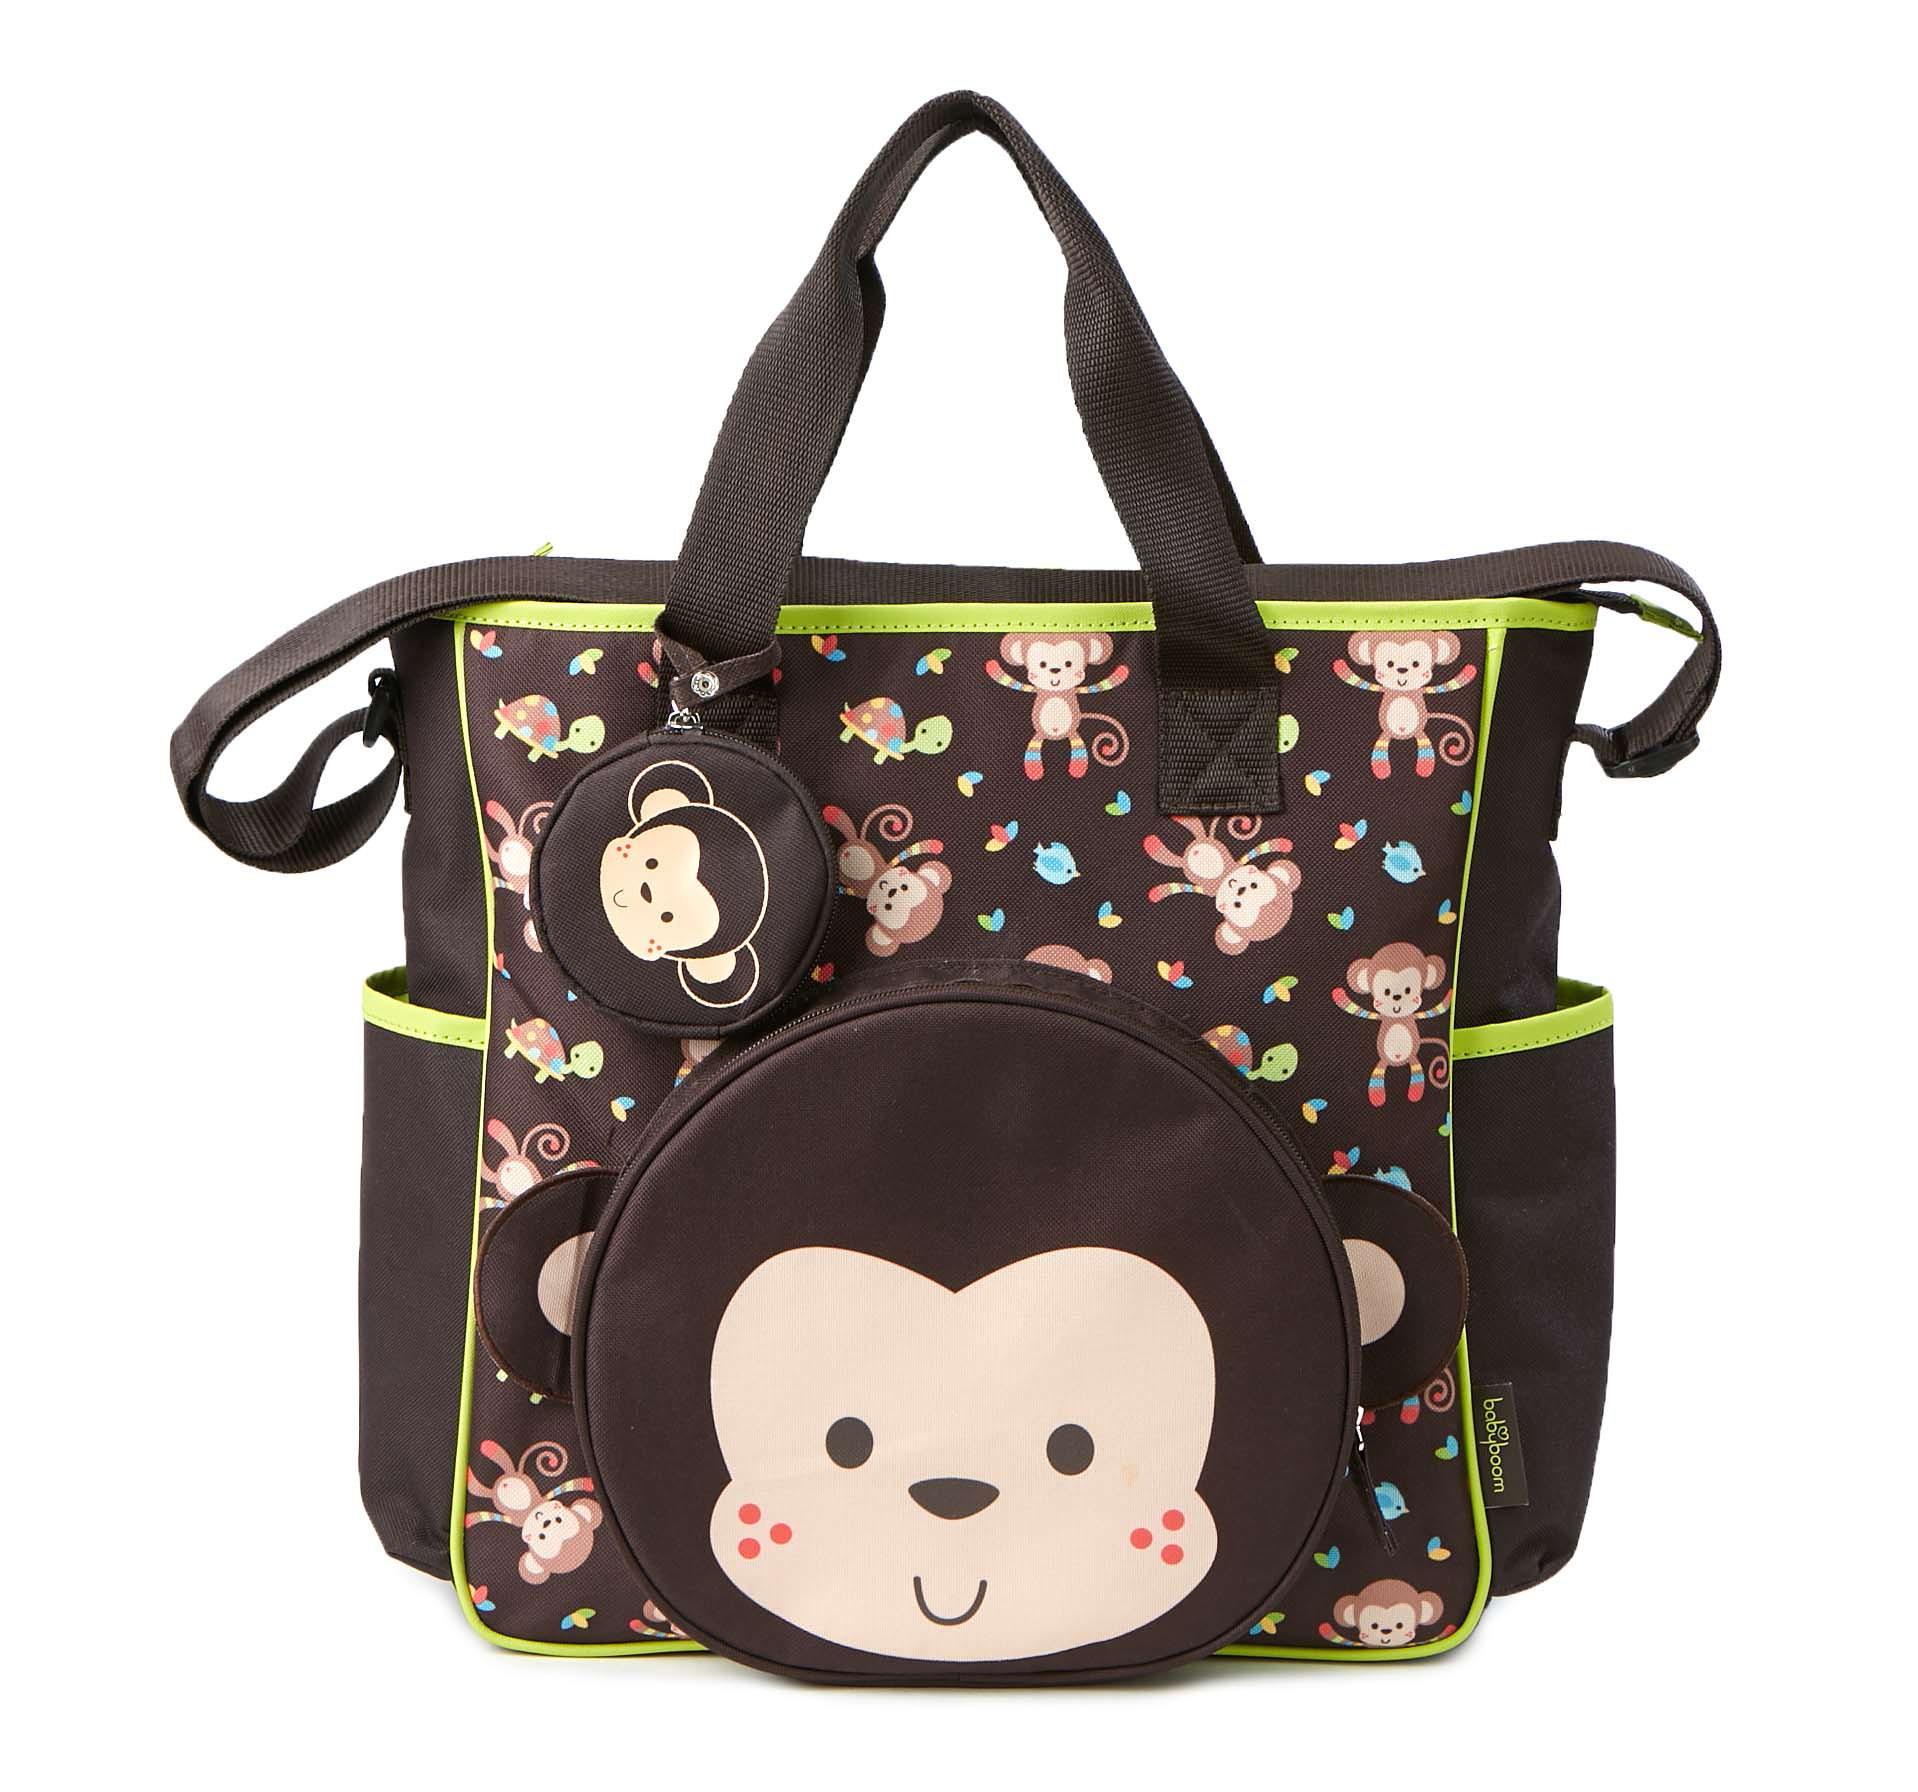 Baby Boom Monkey Applique Tote Diaper Bag by Baby Boom